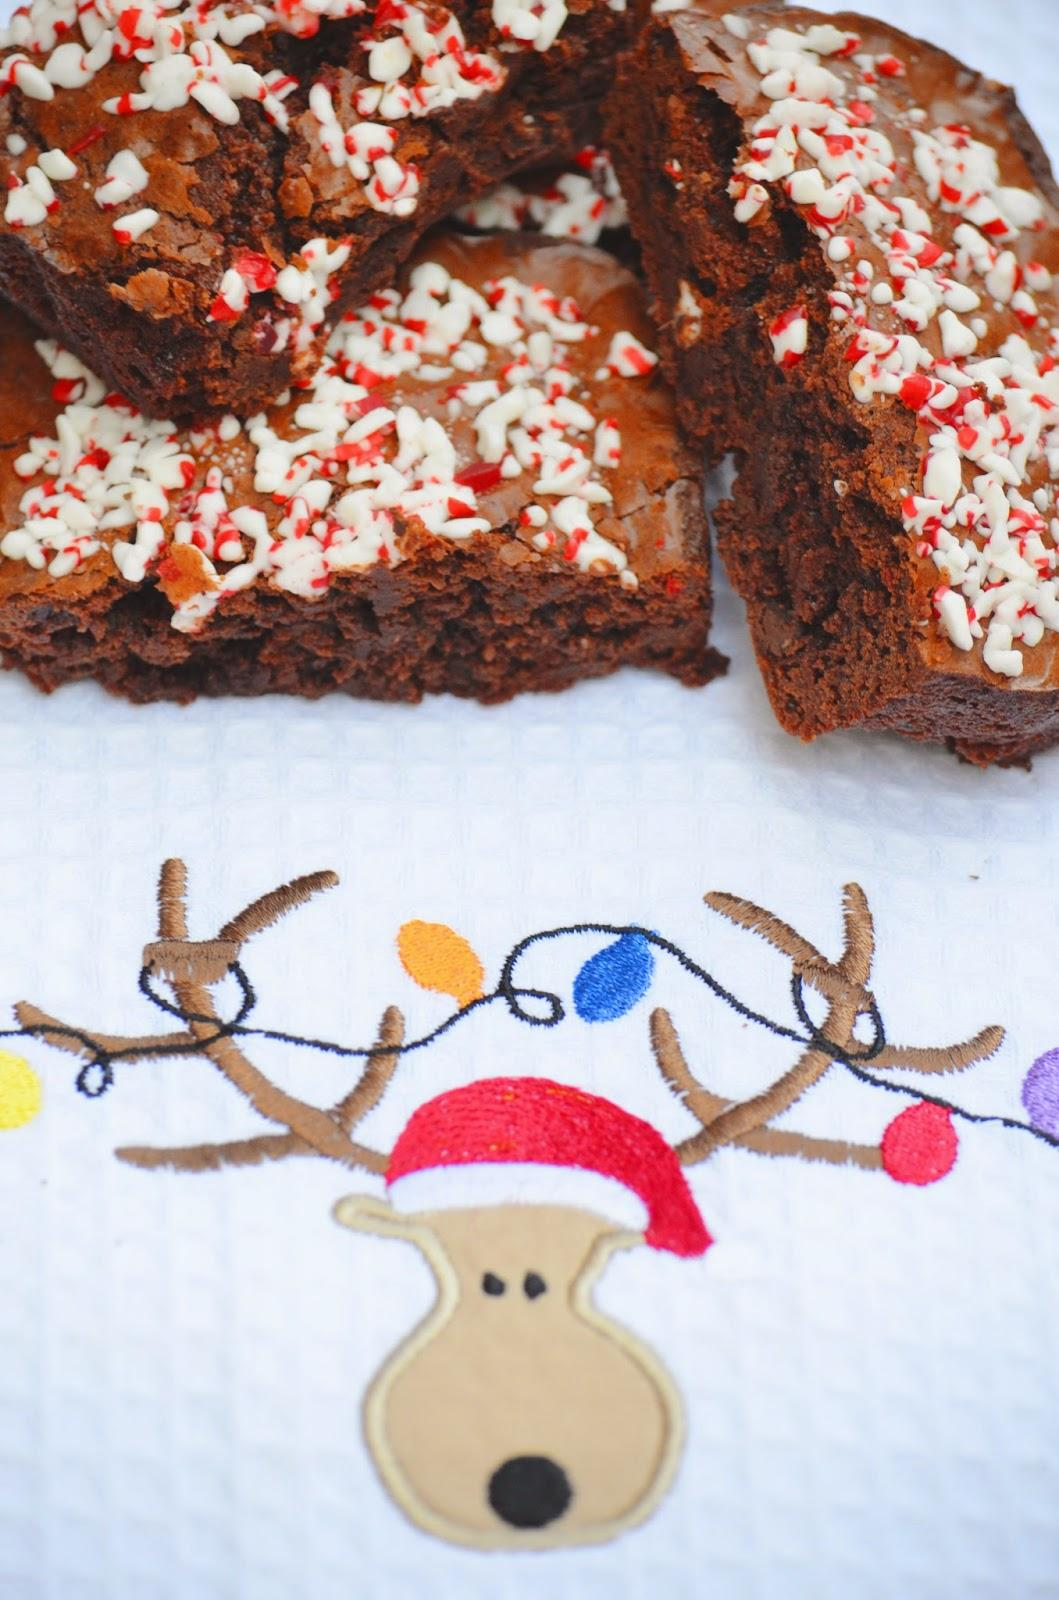 Cook, Food, Cooking, Bake, Breakfast bakes, Baking, Indigo Kitchen, Brownie, Christmas, Winter, Christmas dessert, Dessert,